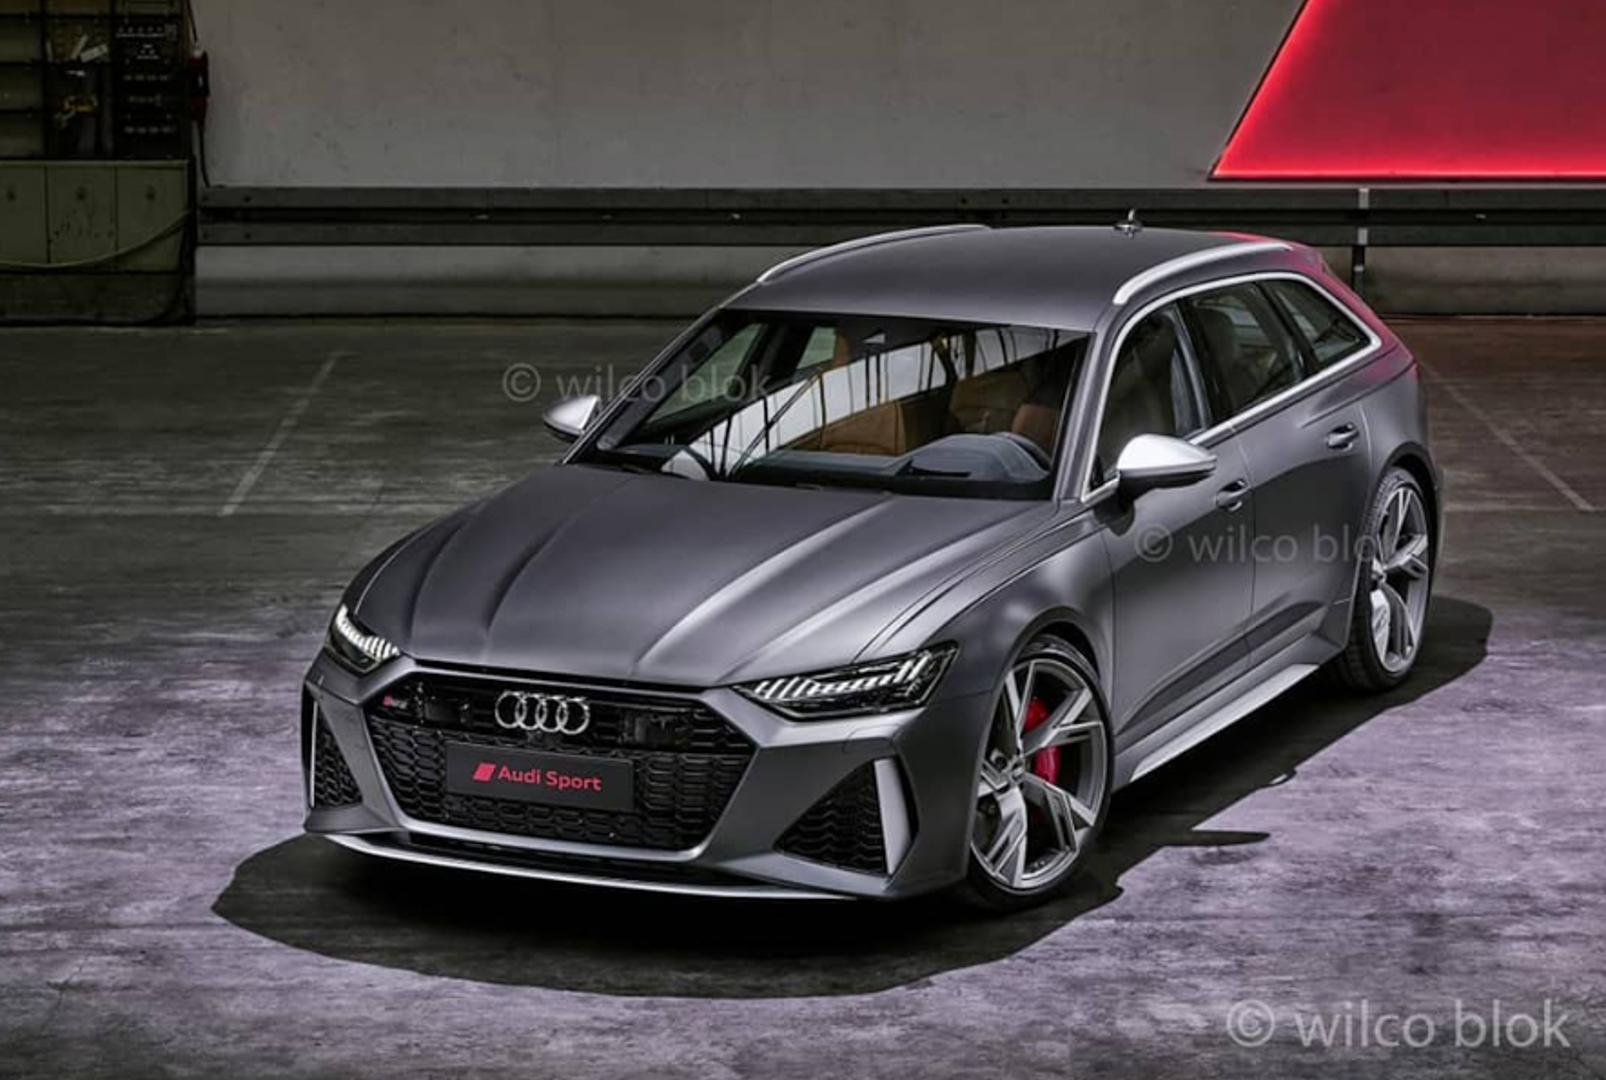 Audi has released the first official pics of its updated RS6 Avant super estate/wagon along with some technical specs and features.